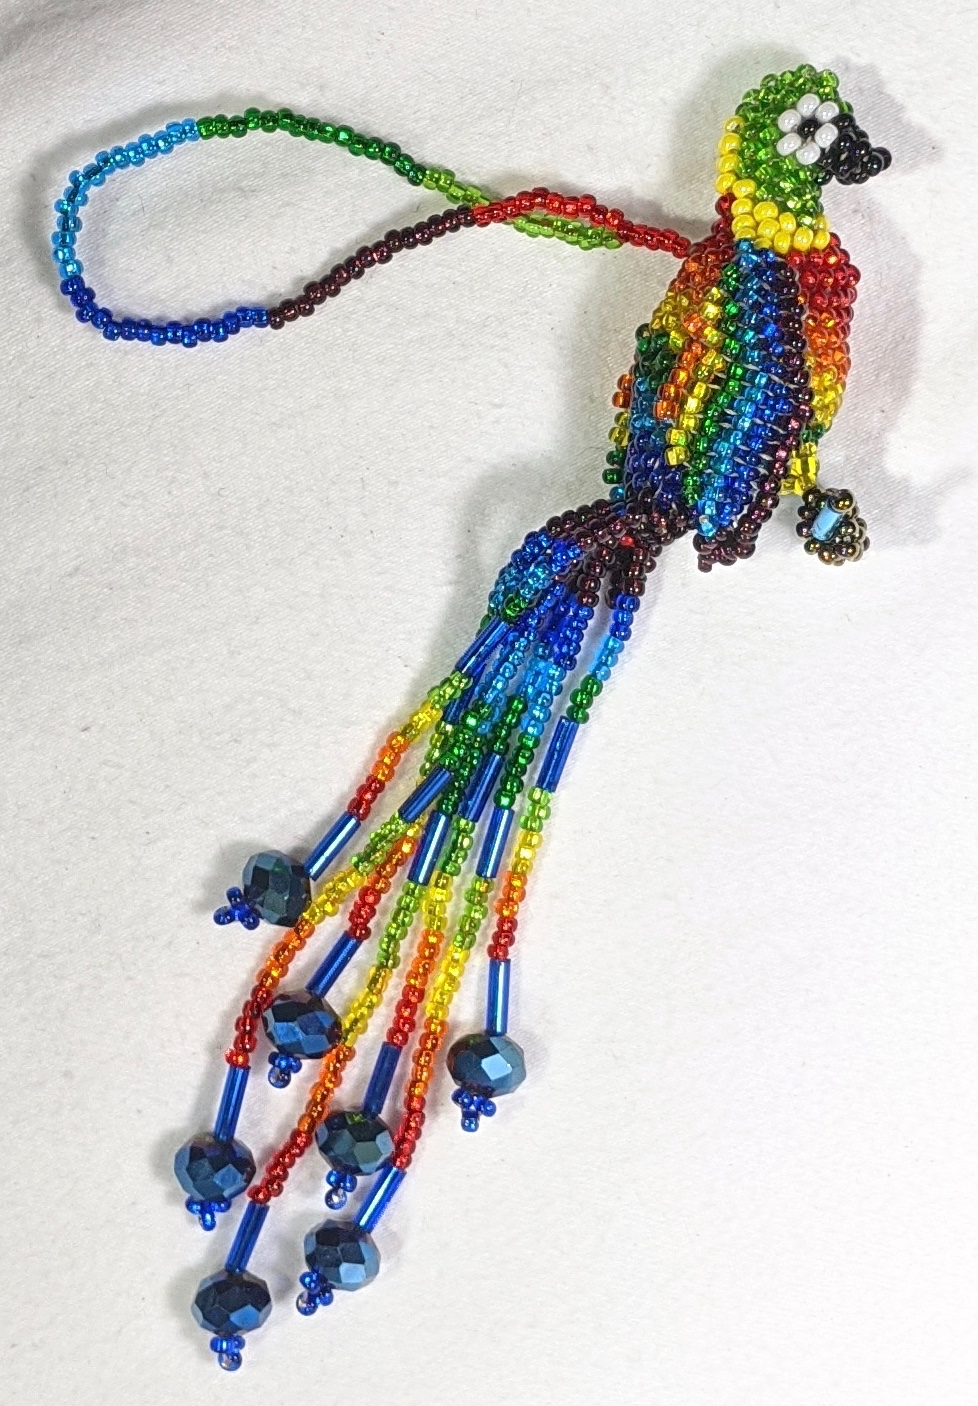 Parrot Beaded Ornament -  Rainbow with Blue Crystals